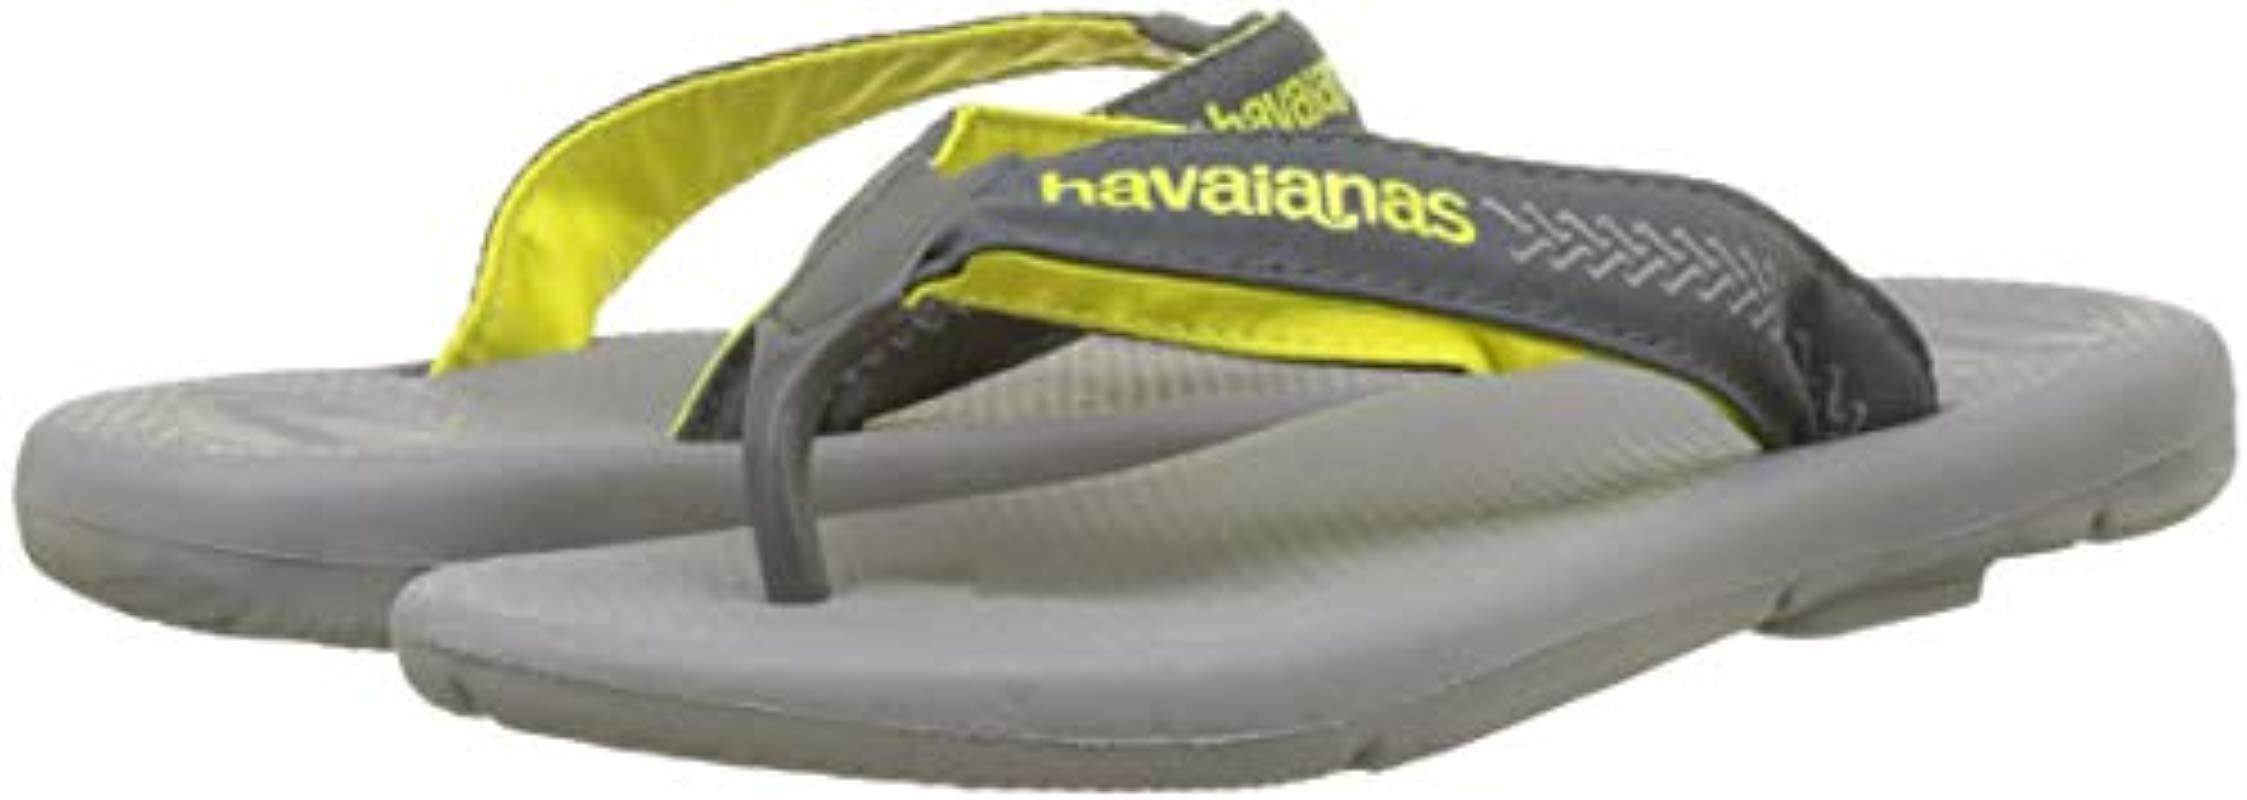 havaianas m and m direct